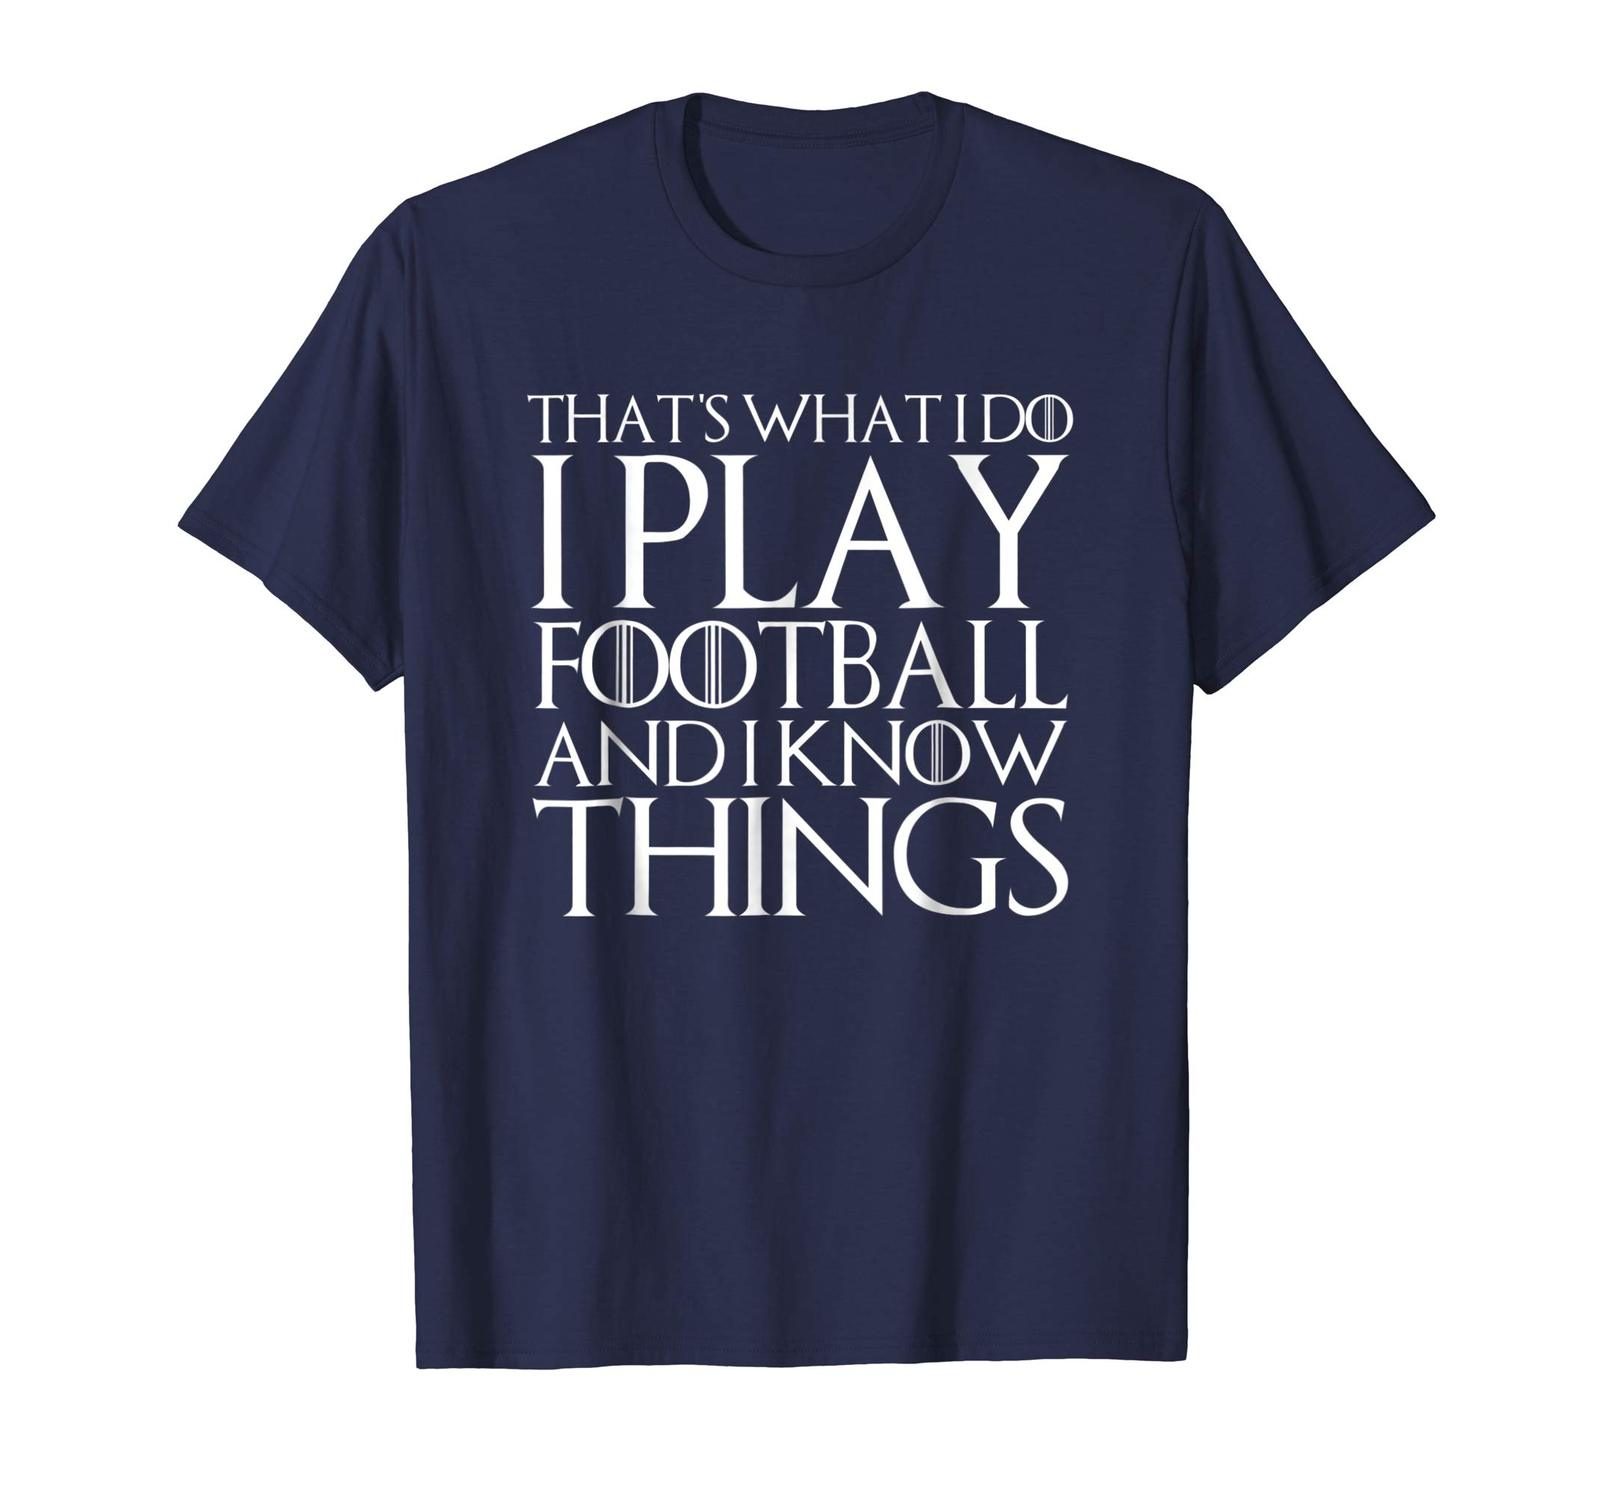 Primary image for Brother Shirts - THAT'S WHAT I DO I PLAY FOOTBALL AND I KNOW THINGS T-Shirt Men